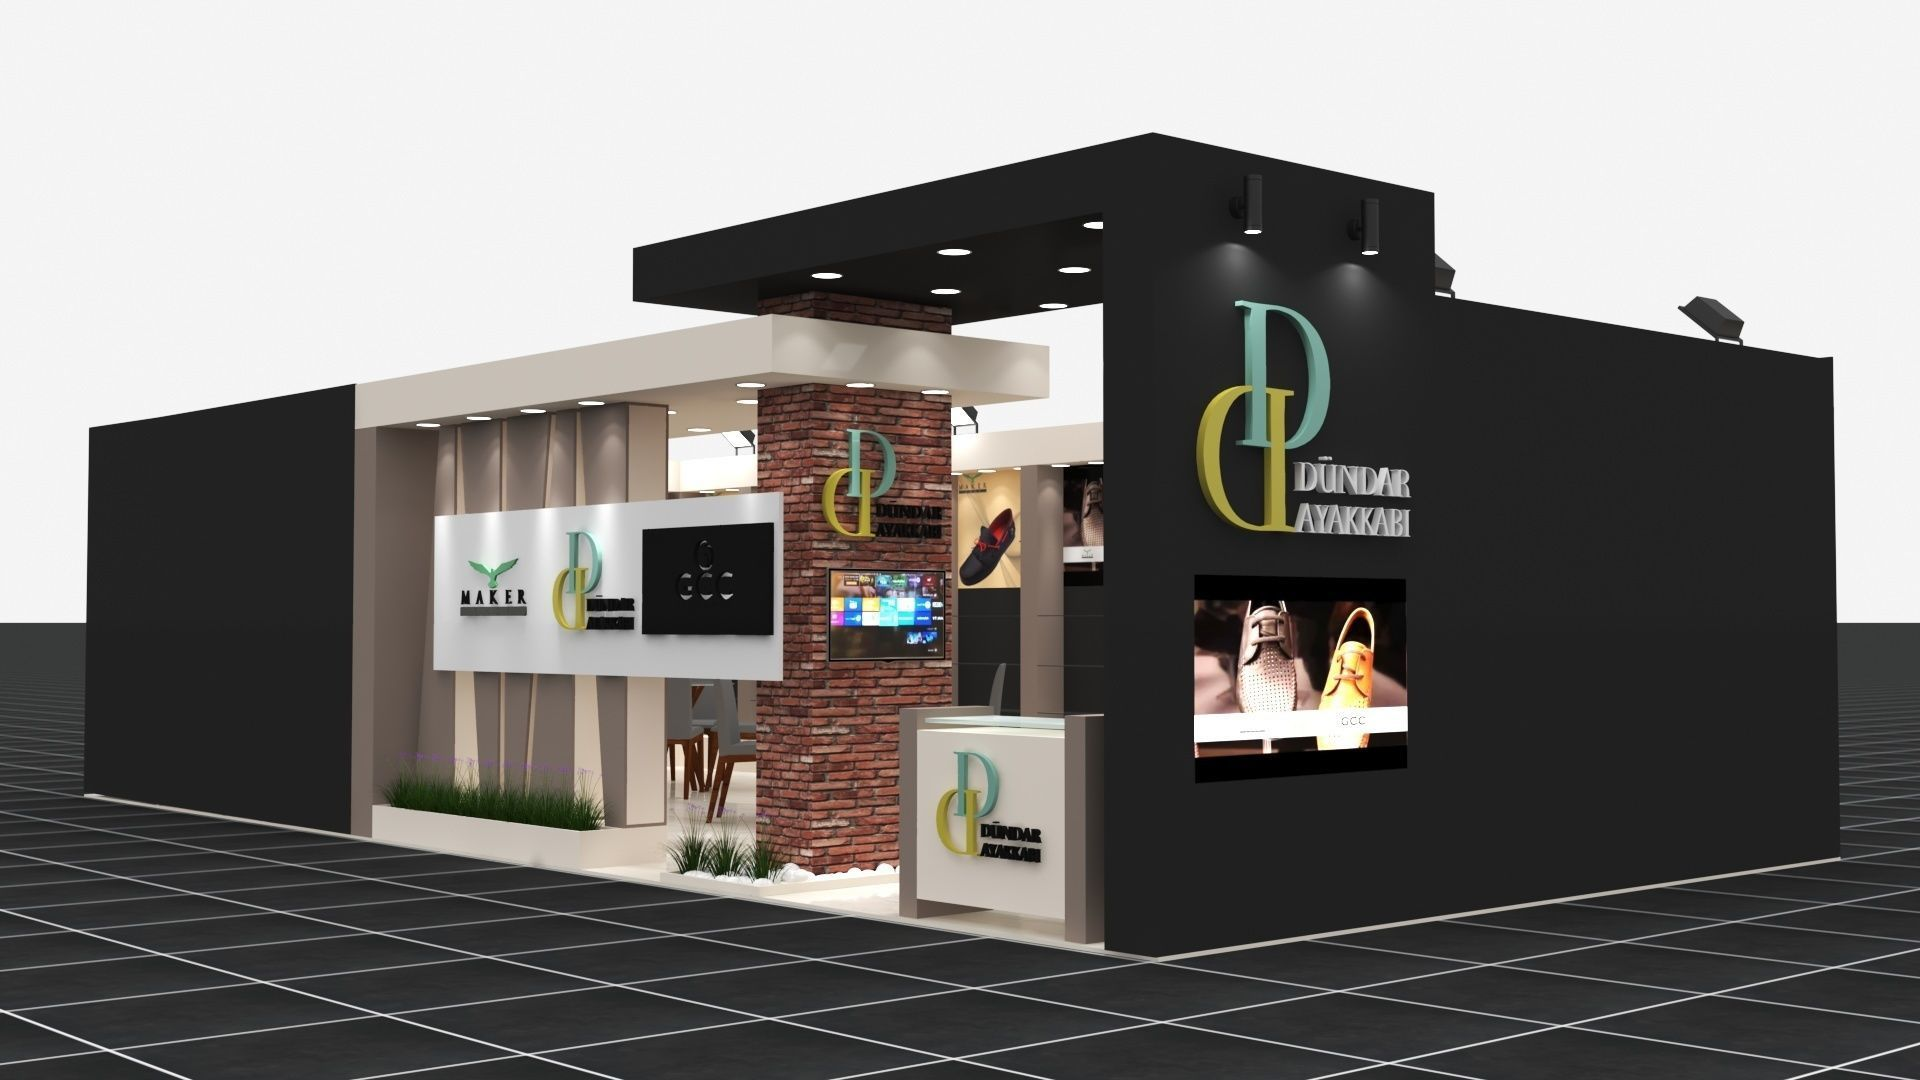 Exhibition Stall Size 12 m x 6 m  Height 300 cm